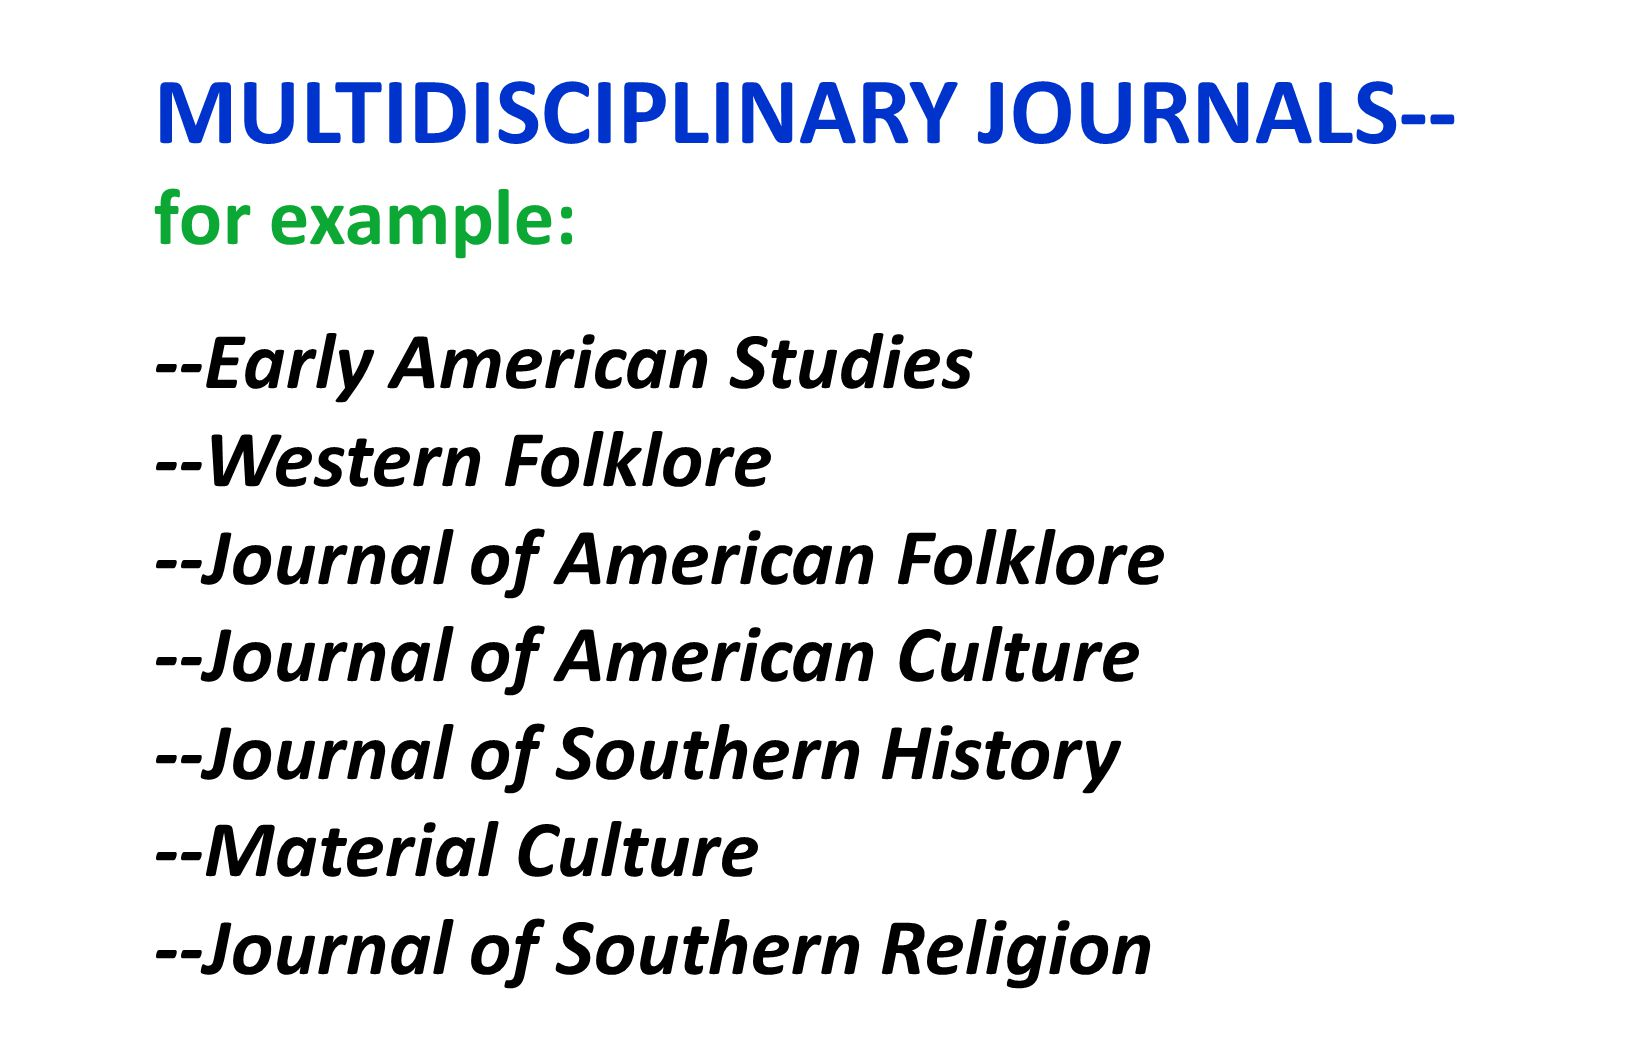 MULTIDISCIPLINARY JOURNALS-- for example: --Early American Studies --Western Folklore --Journal of American Folklore --Journal of American Culture --Journal of Southern History --Material Culture --Journal of Southern Religion